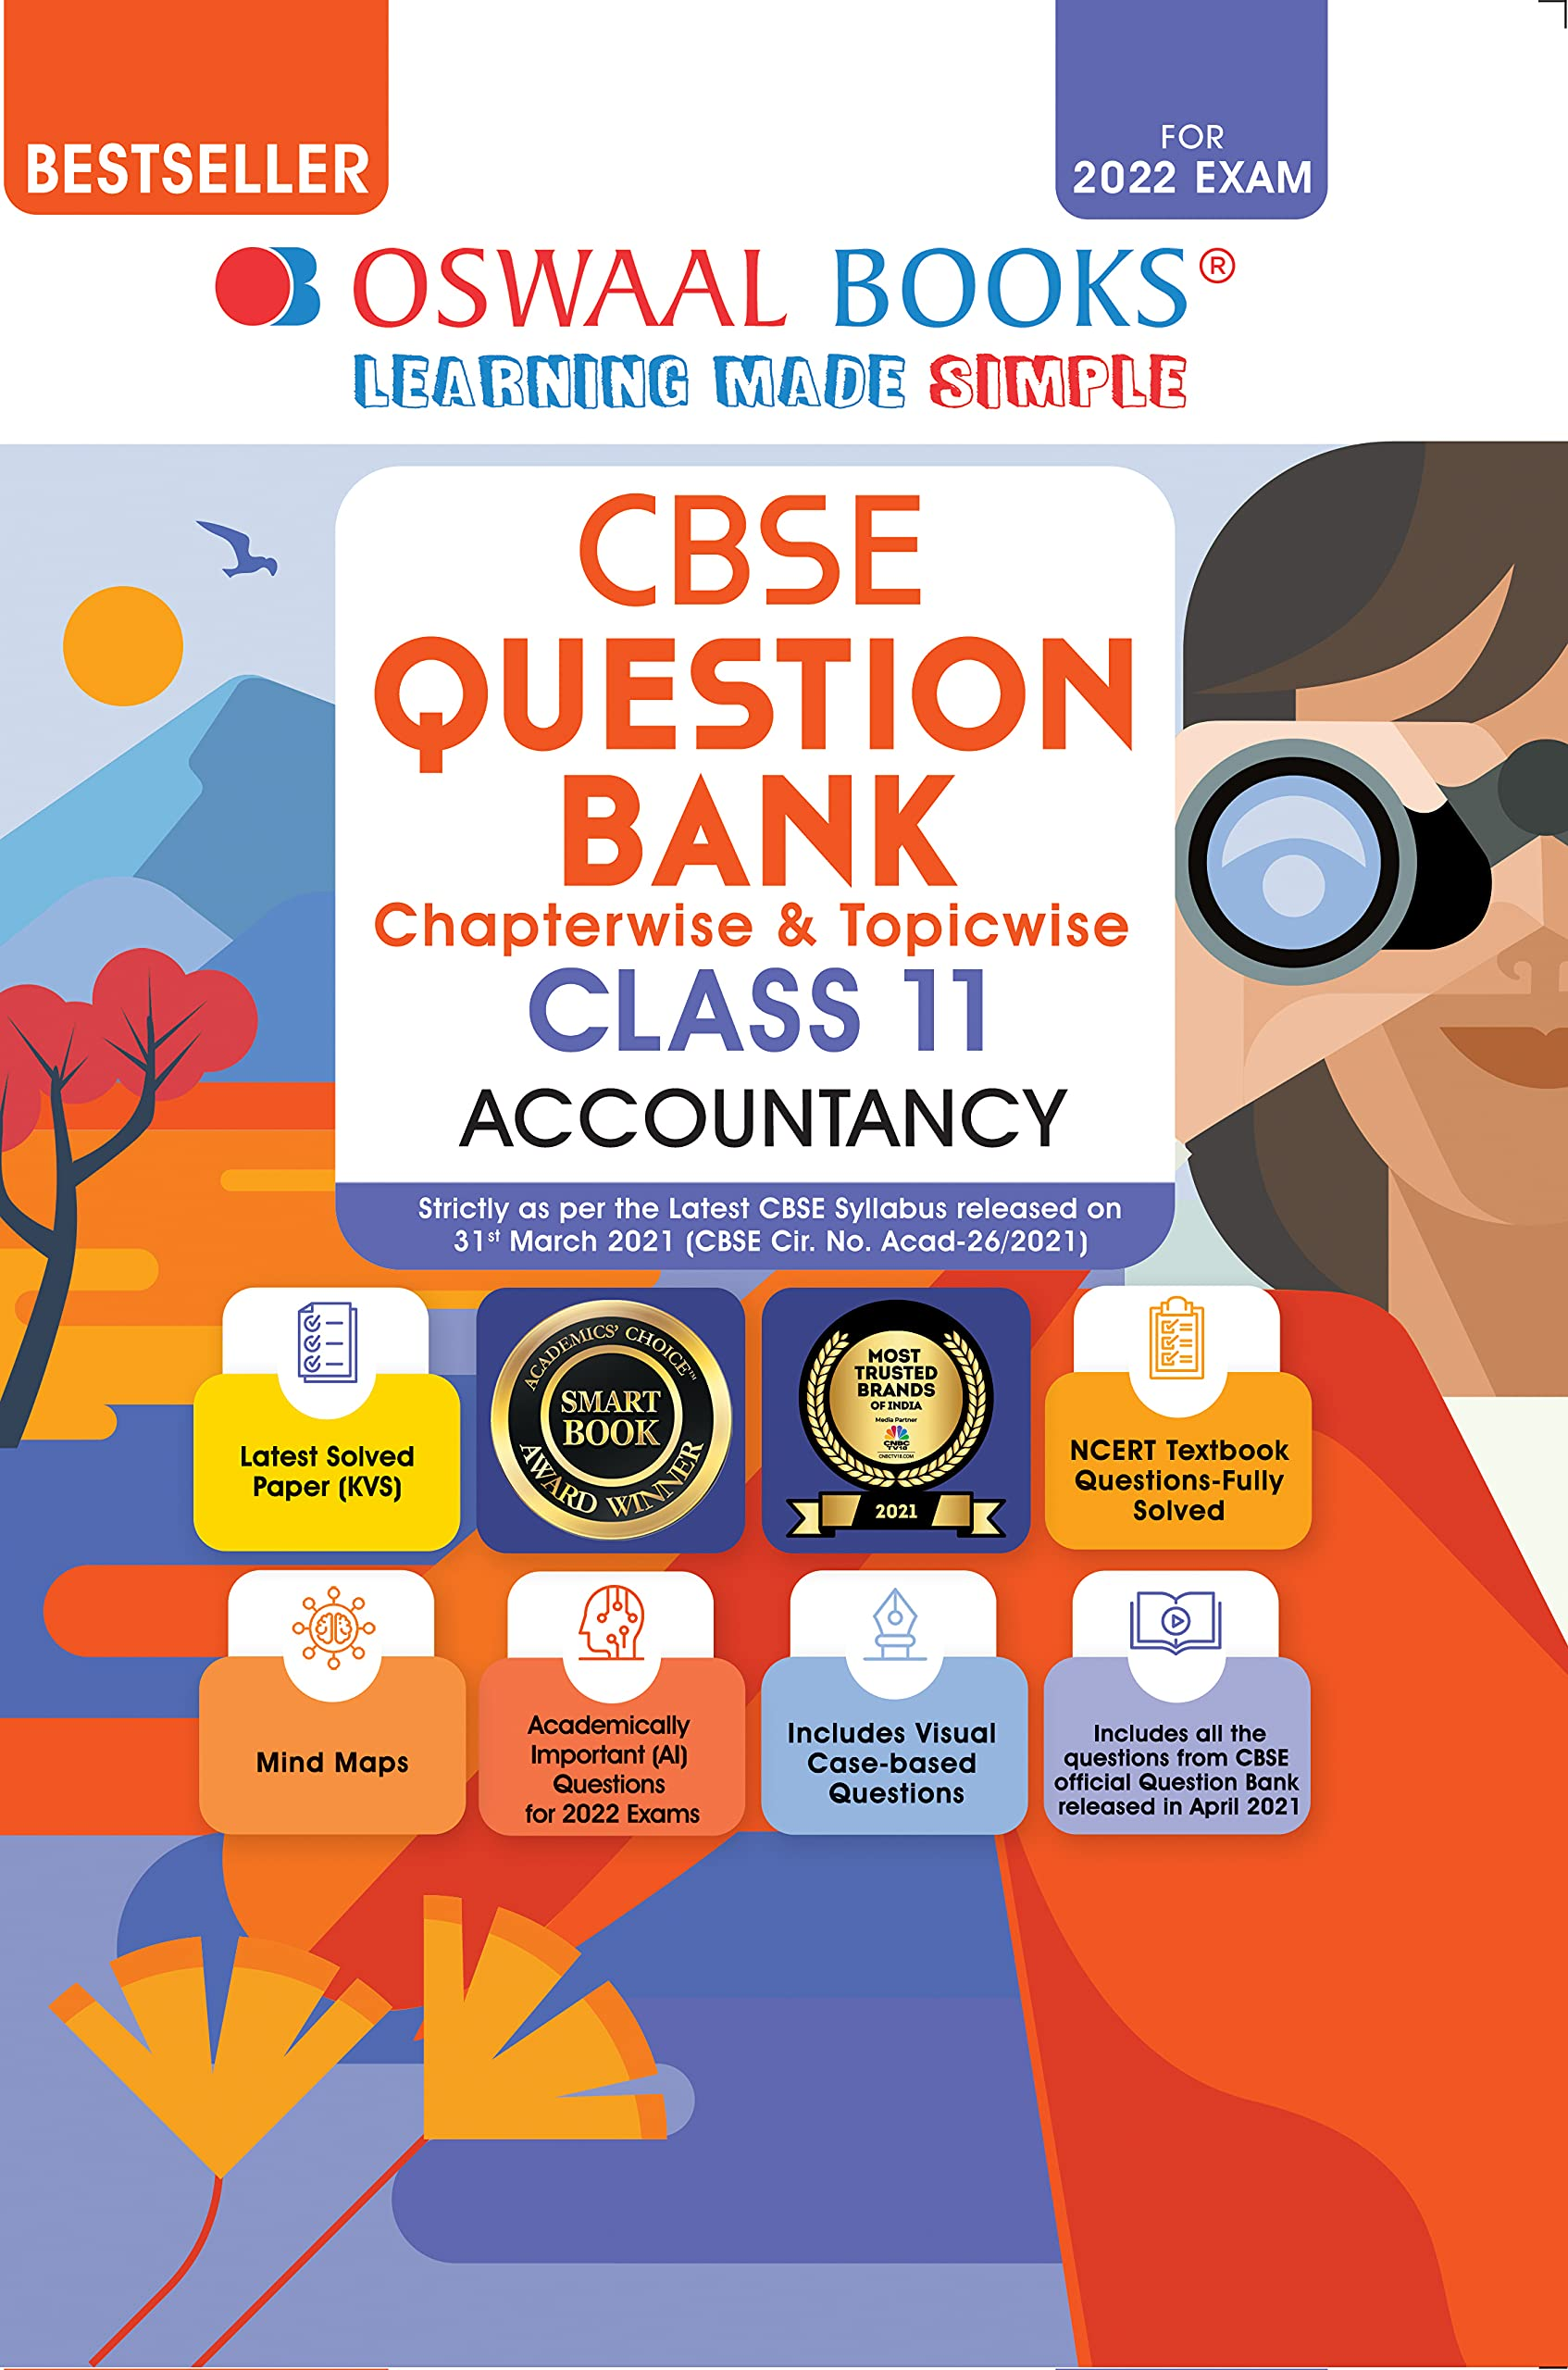 Oswaal CBSE Question Bank Class 11 Accountancy Book Chapterwise & Topicwise Includes Objective Types & MCQ's (For 2022 Exam)